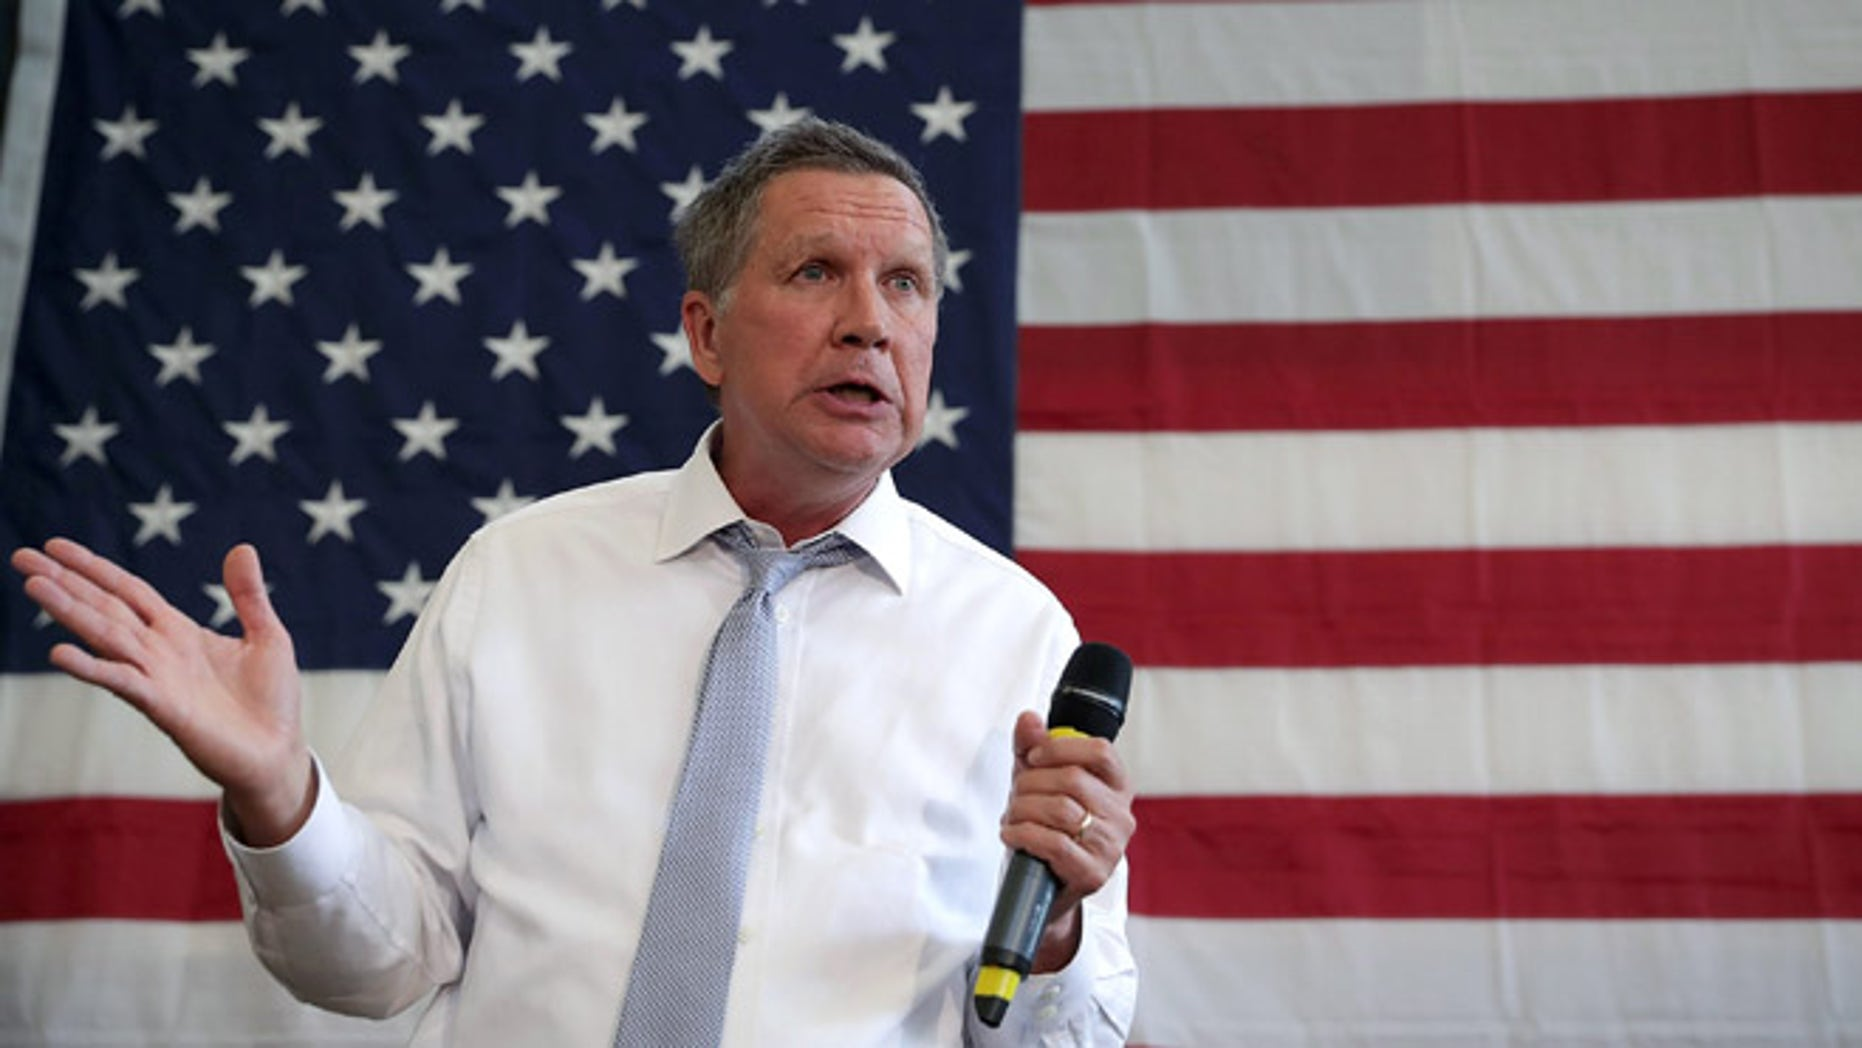 ROCKVILLE, MD - APRIL 25:  Republican presidential candidate and Ohio Governor John Kasich speaks during a campaign event April 25, 2016 in Rockville, Maryland. Governor Kasich continued to seek for his party��s nomination for the general election.  (Photo by Alex Wong/Getty Images)